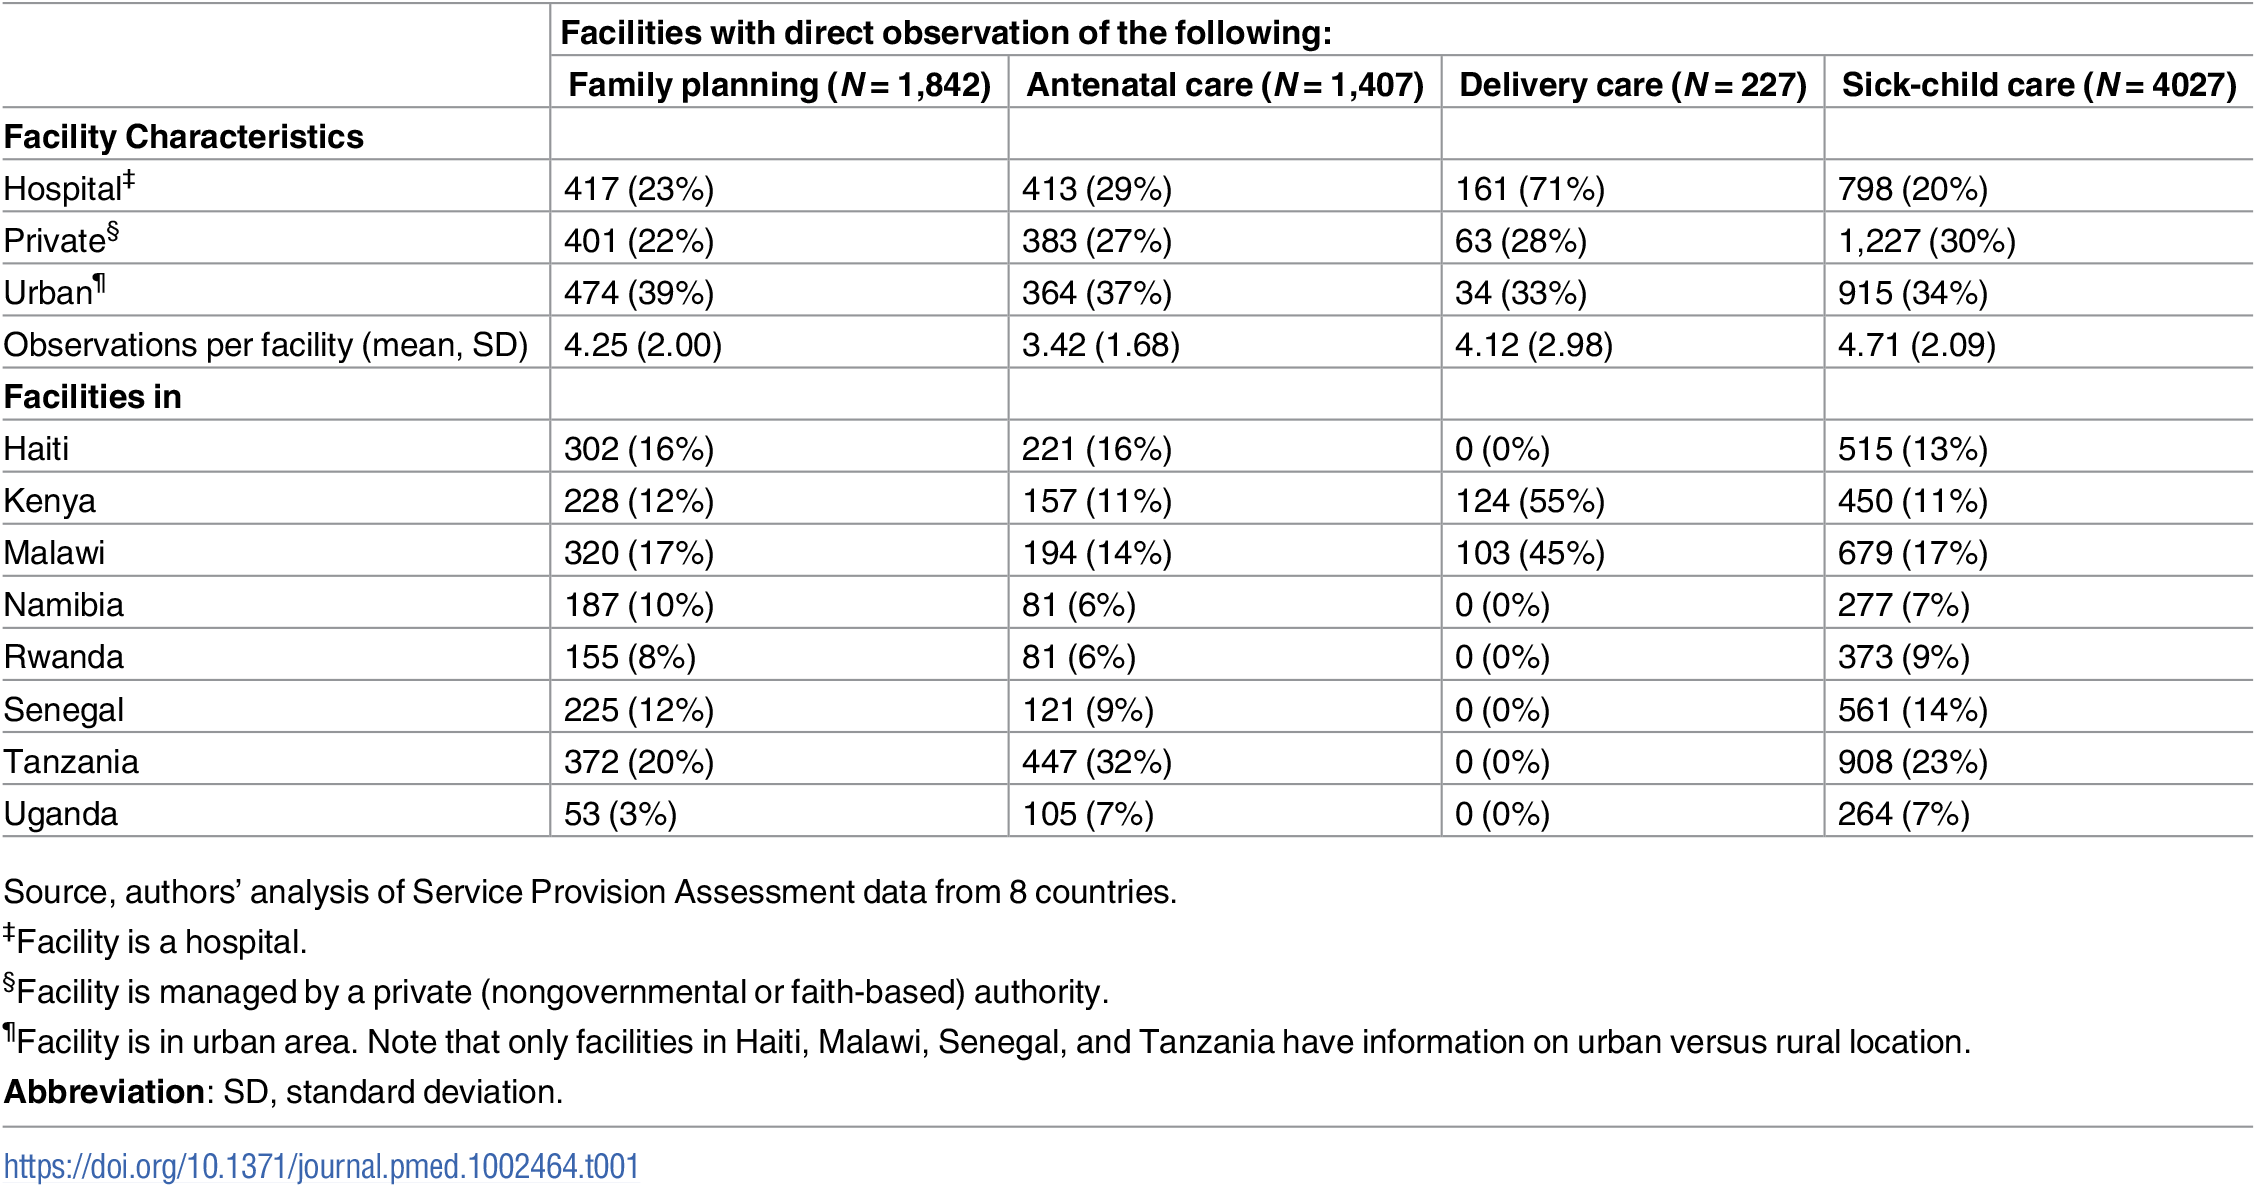 Characteristics of facilities providing family planning, antenatal, sick-child, and delivery care in 8 countries, 2007–2015.